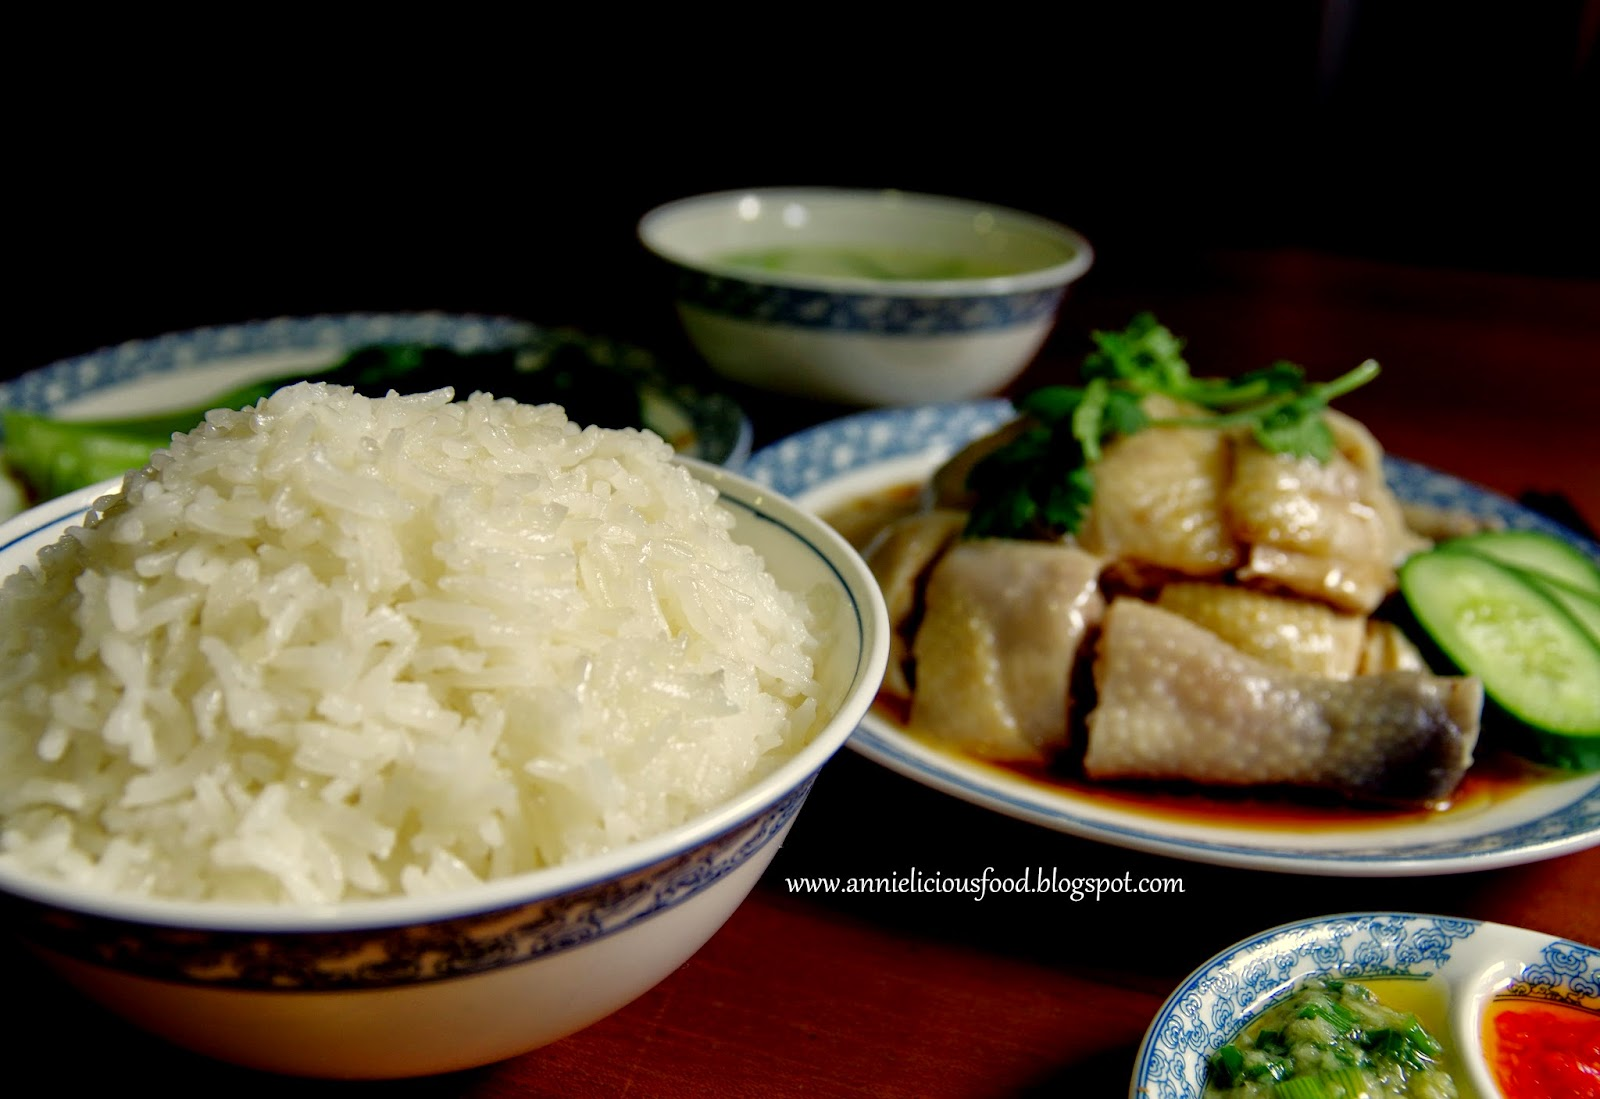 Annielicious food hainanese chicken rice aff sunday september 7 2014 forumfinder Choice Image